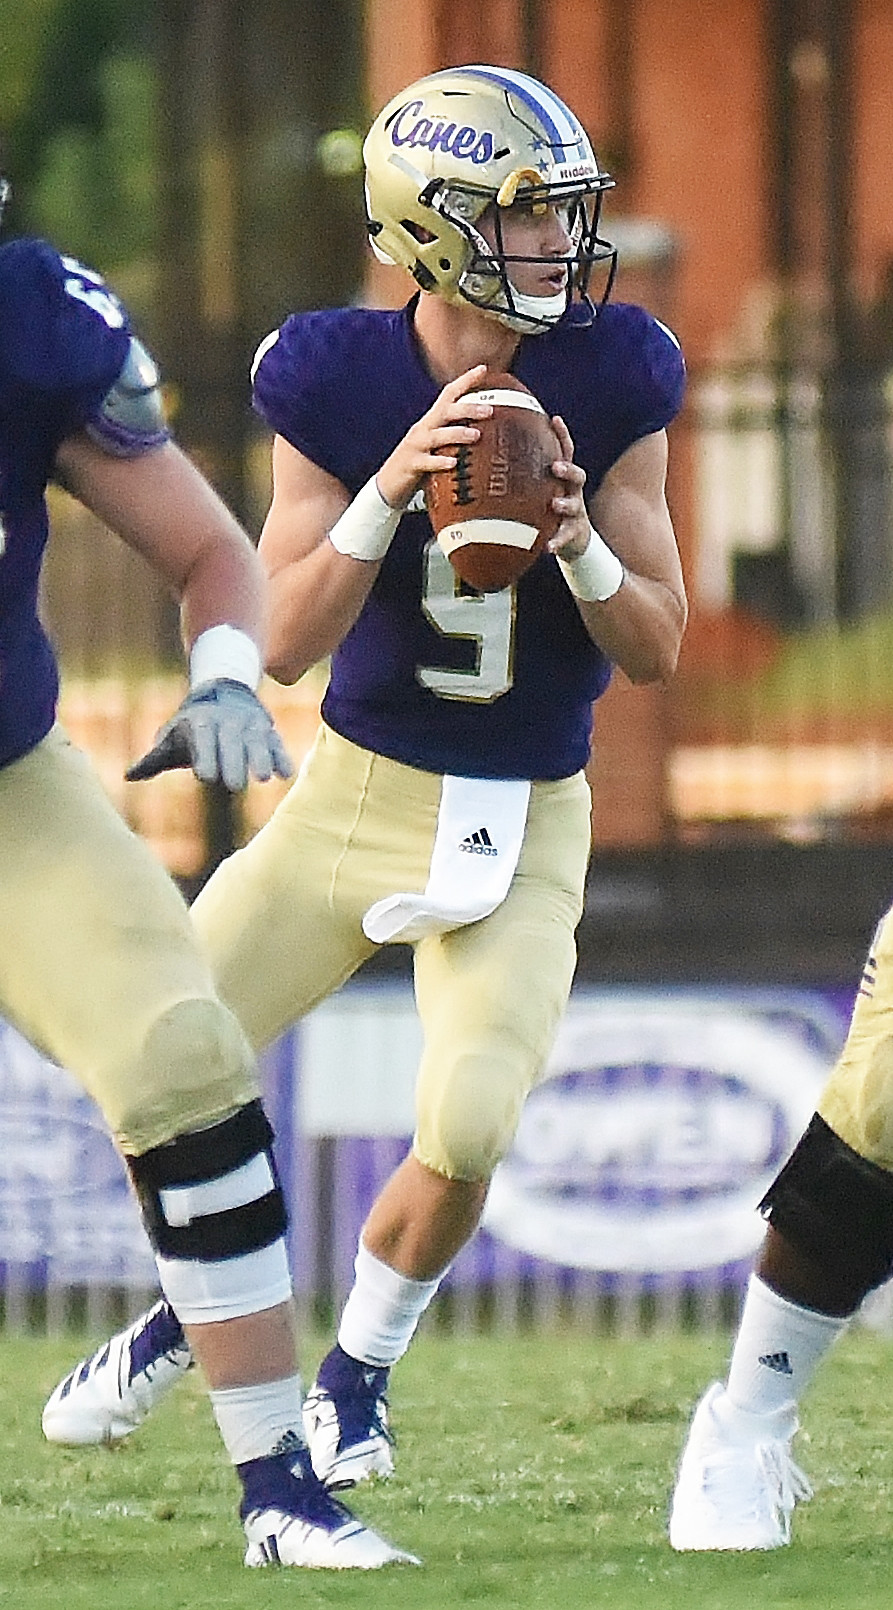 Cartersville junior quarterback Tee Webb drops back to pass during Friday's blowout win over Luella at Weinman Stadium. Webb finished 12-of-14 passing for 242 yards and six touchdowns. He also added 49 yards and a score on the ground.